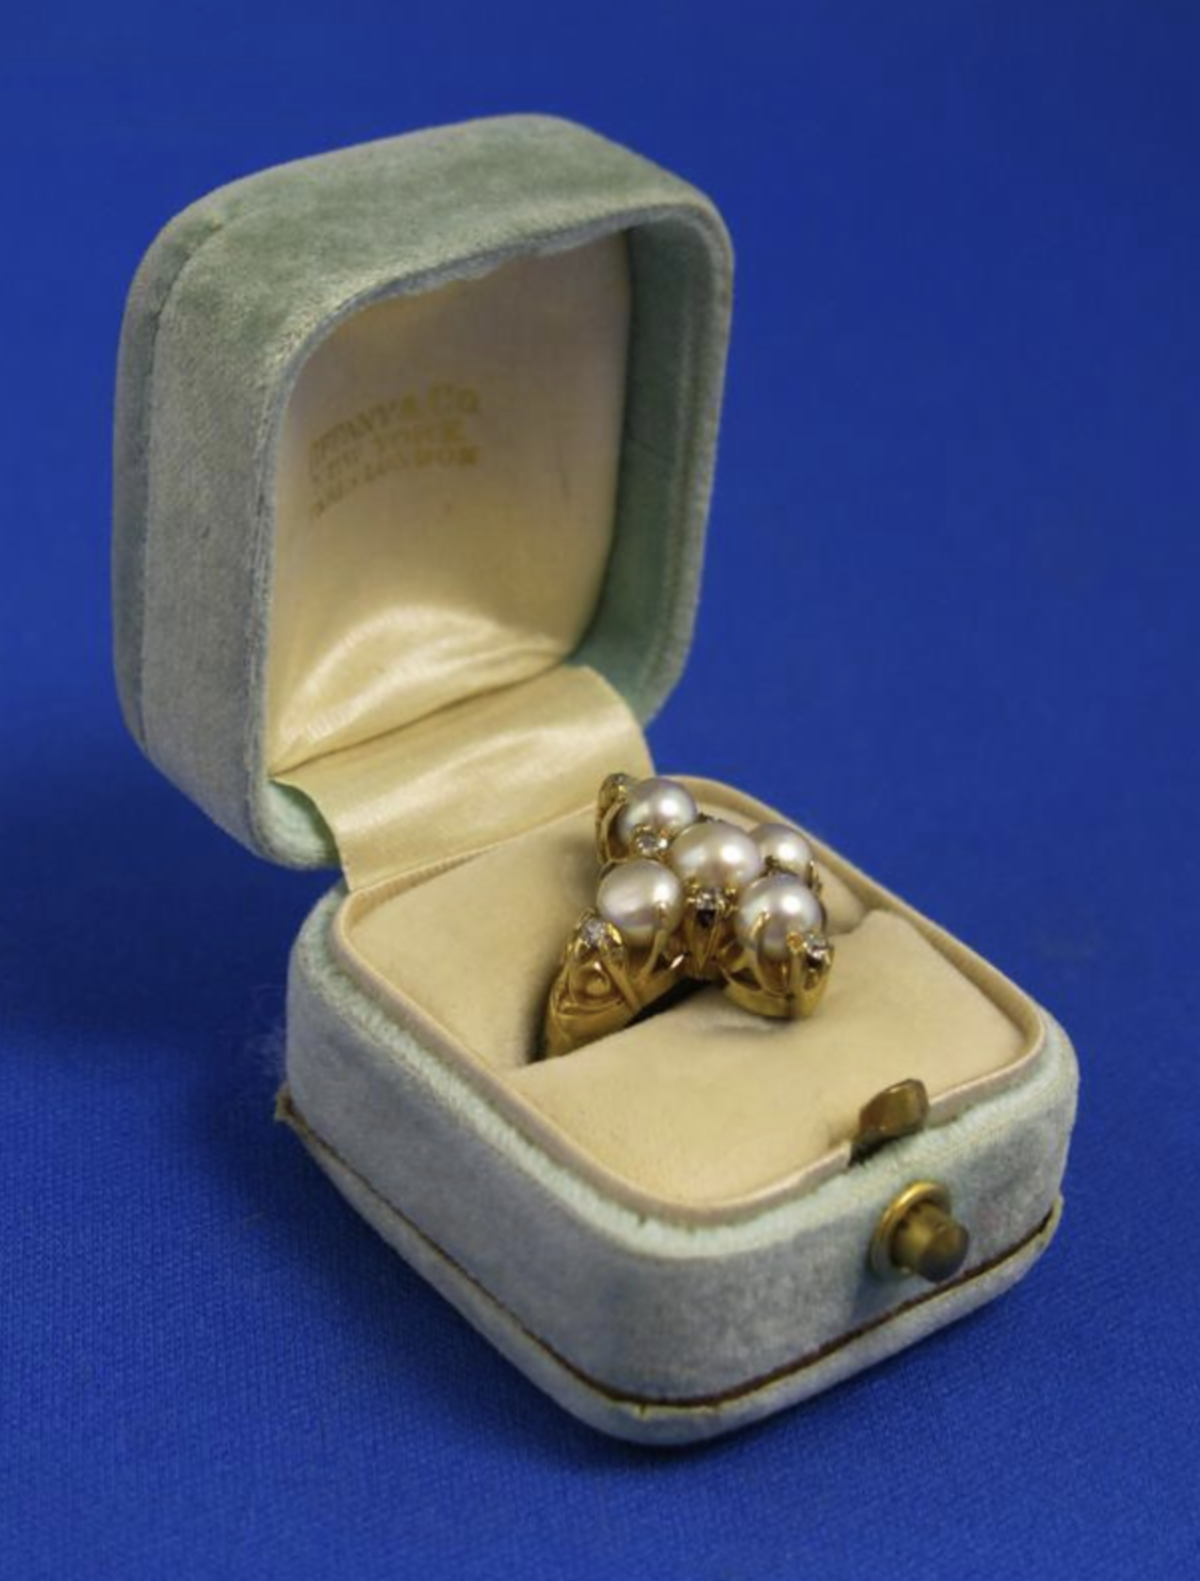 Ring worn by Eleanor Roosevelt